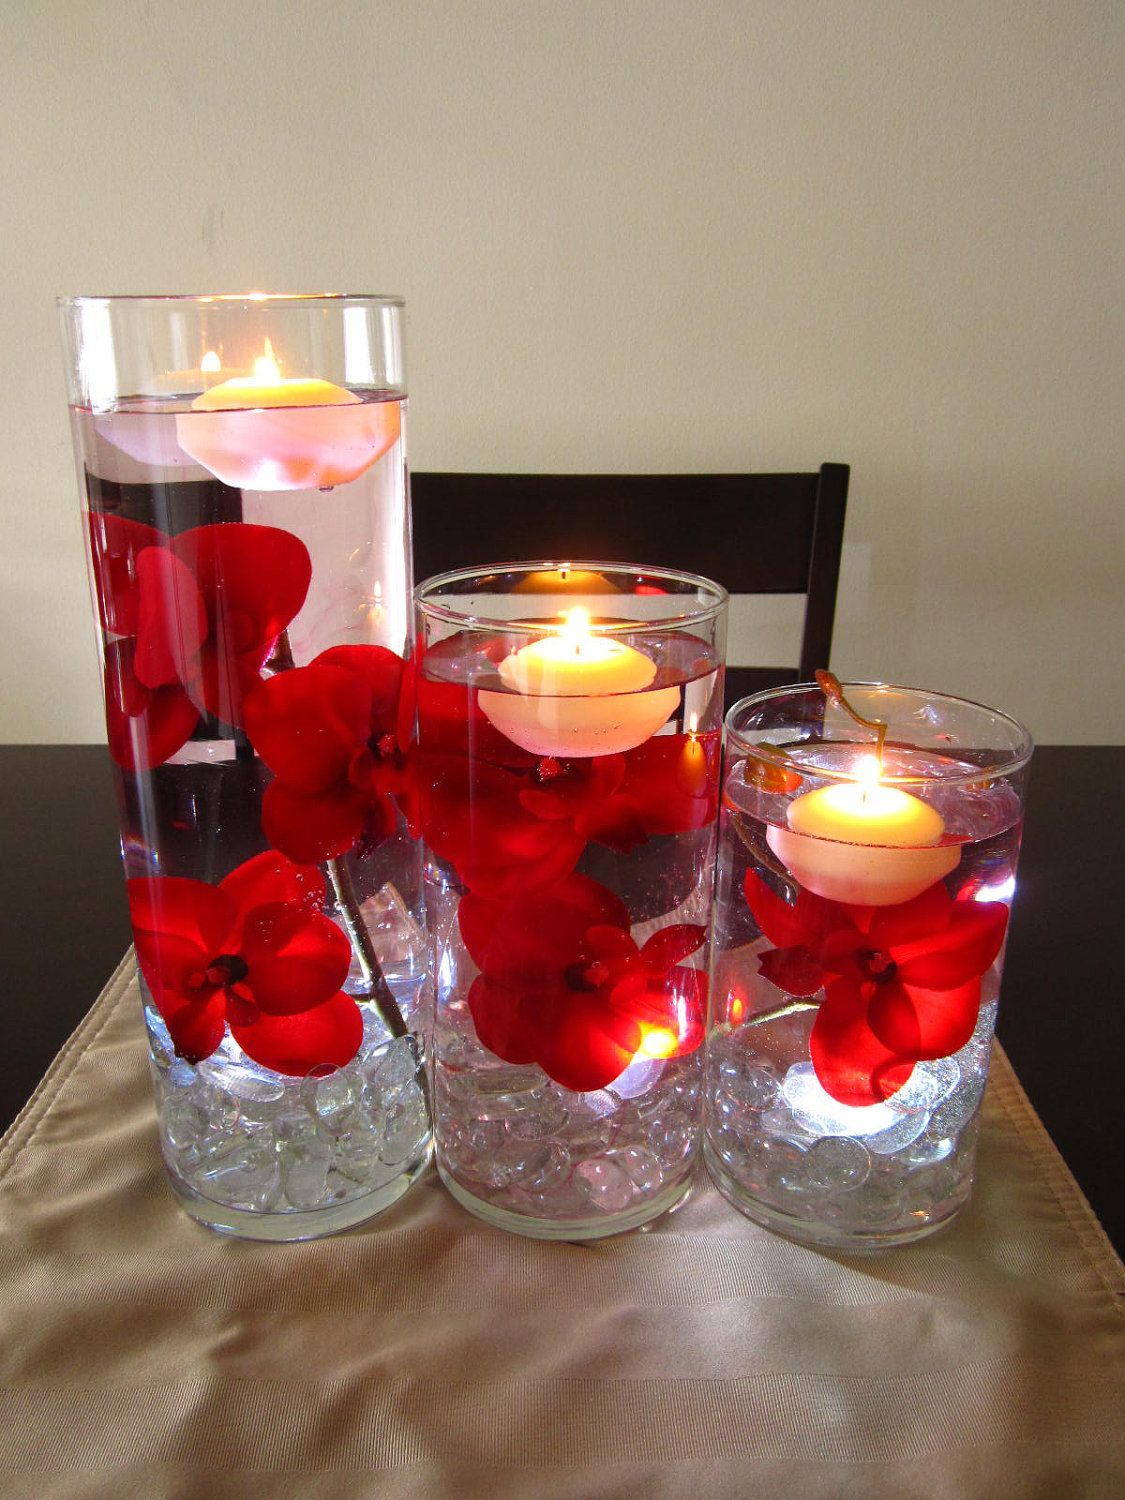 Floating Candle Centerpiece Kit With Artificial Red Orchids And White Led Light Floating Candle Centerpieces Candle Centerpieces Floating Candles